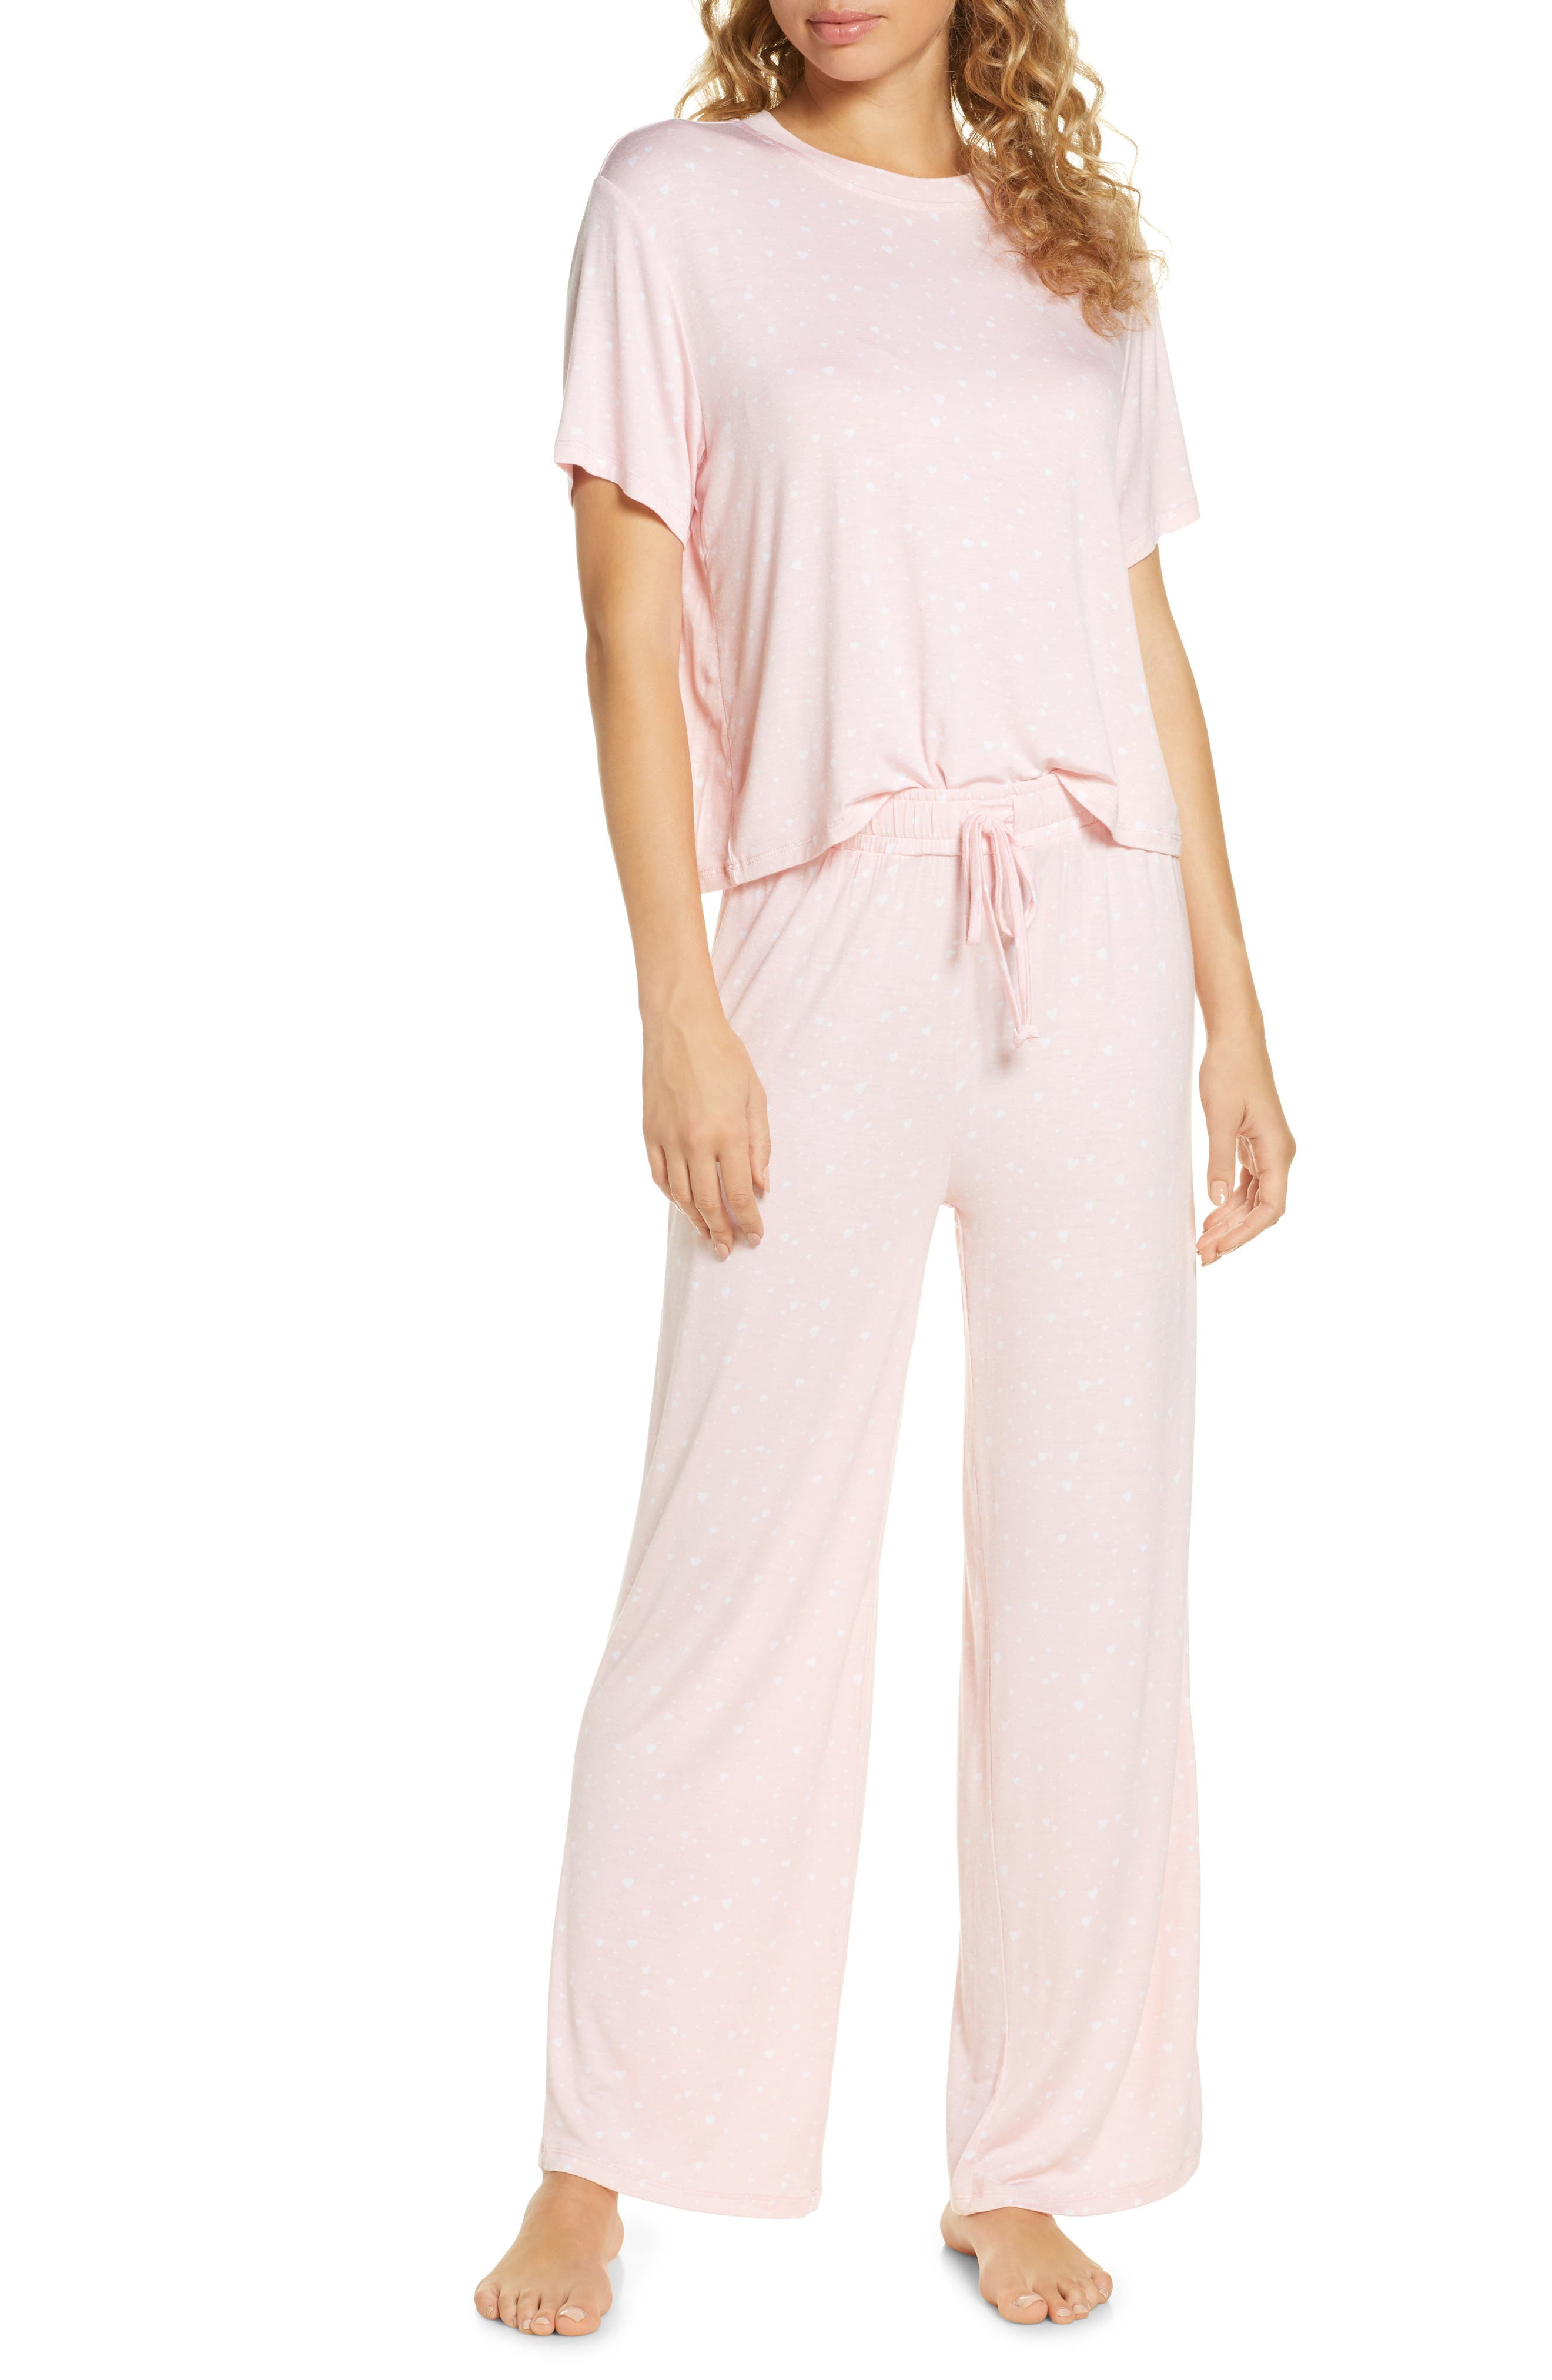 Short-sleeve pajamas in a blissfully soft knit you\\\'ll want to live in come in a choice of colors ands dream-worthy prints. Style Name: Honeydew Intimates All American Pajamas. Style Number: 5897930. Available in stores.